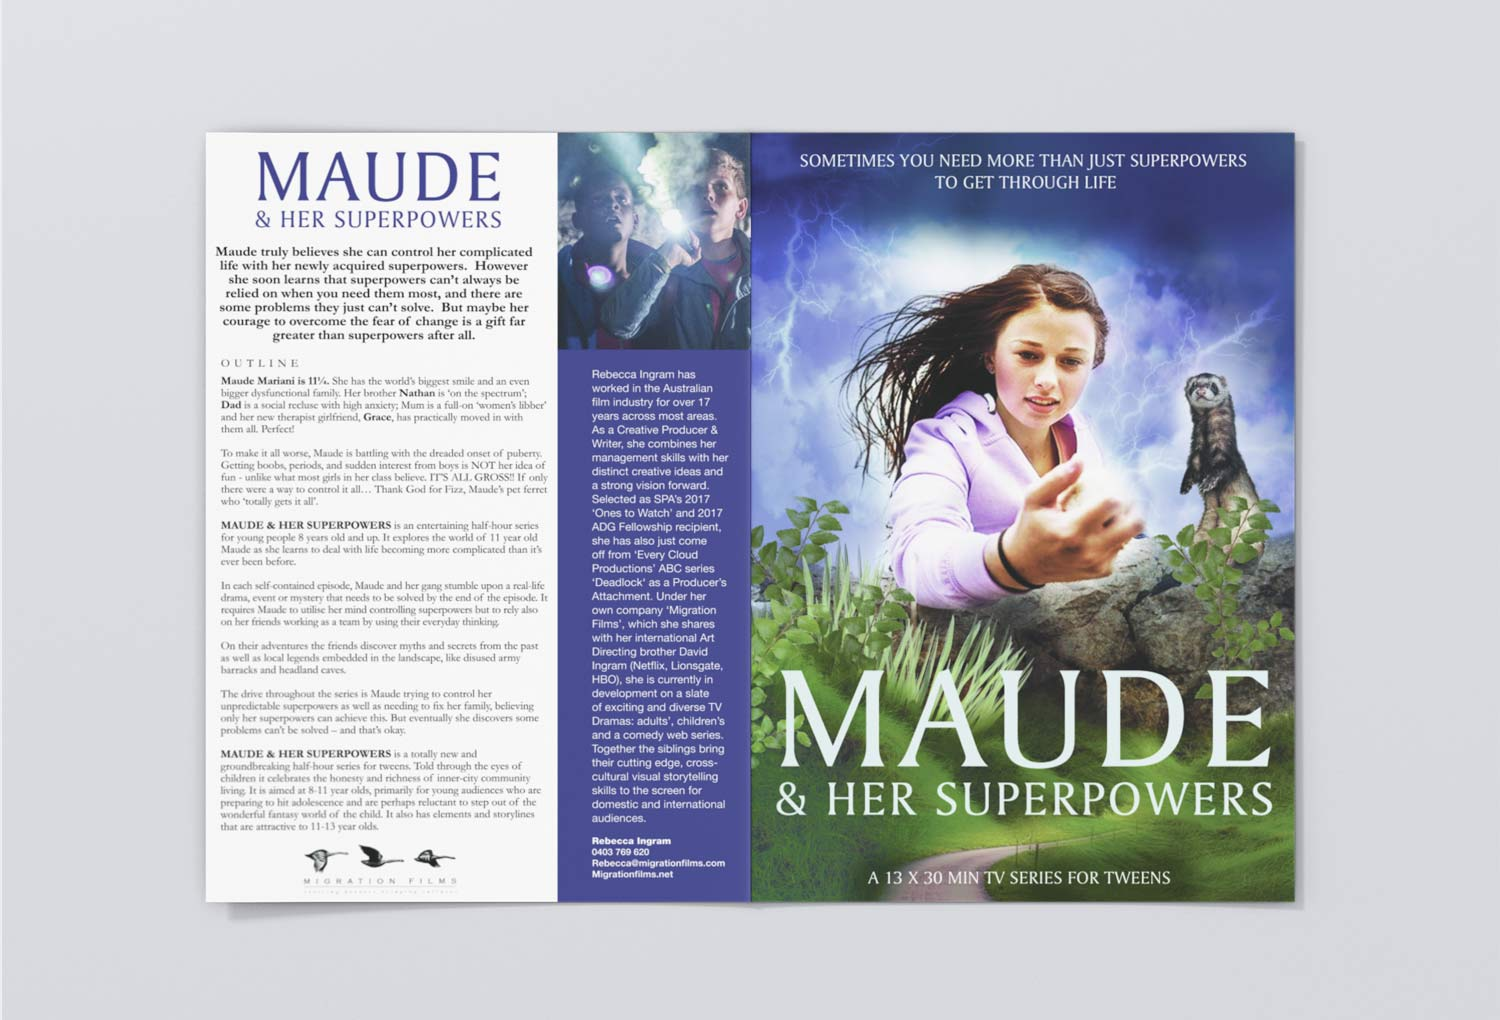 Maude and Her Superpowers TV/Film One-Sheet Pitch Document By Mango Tree Media